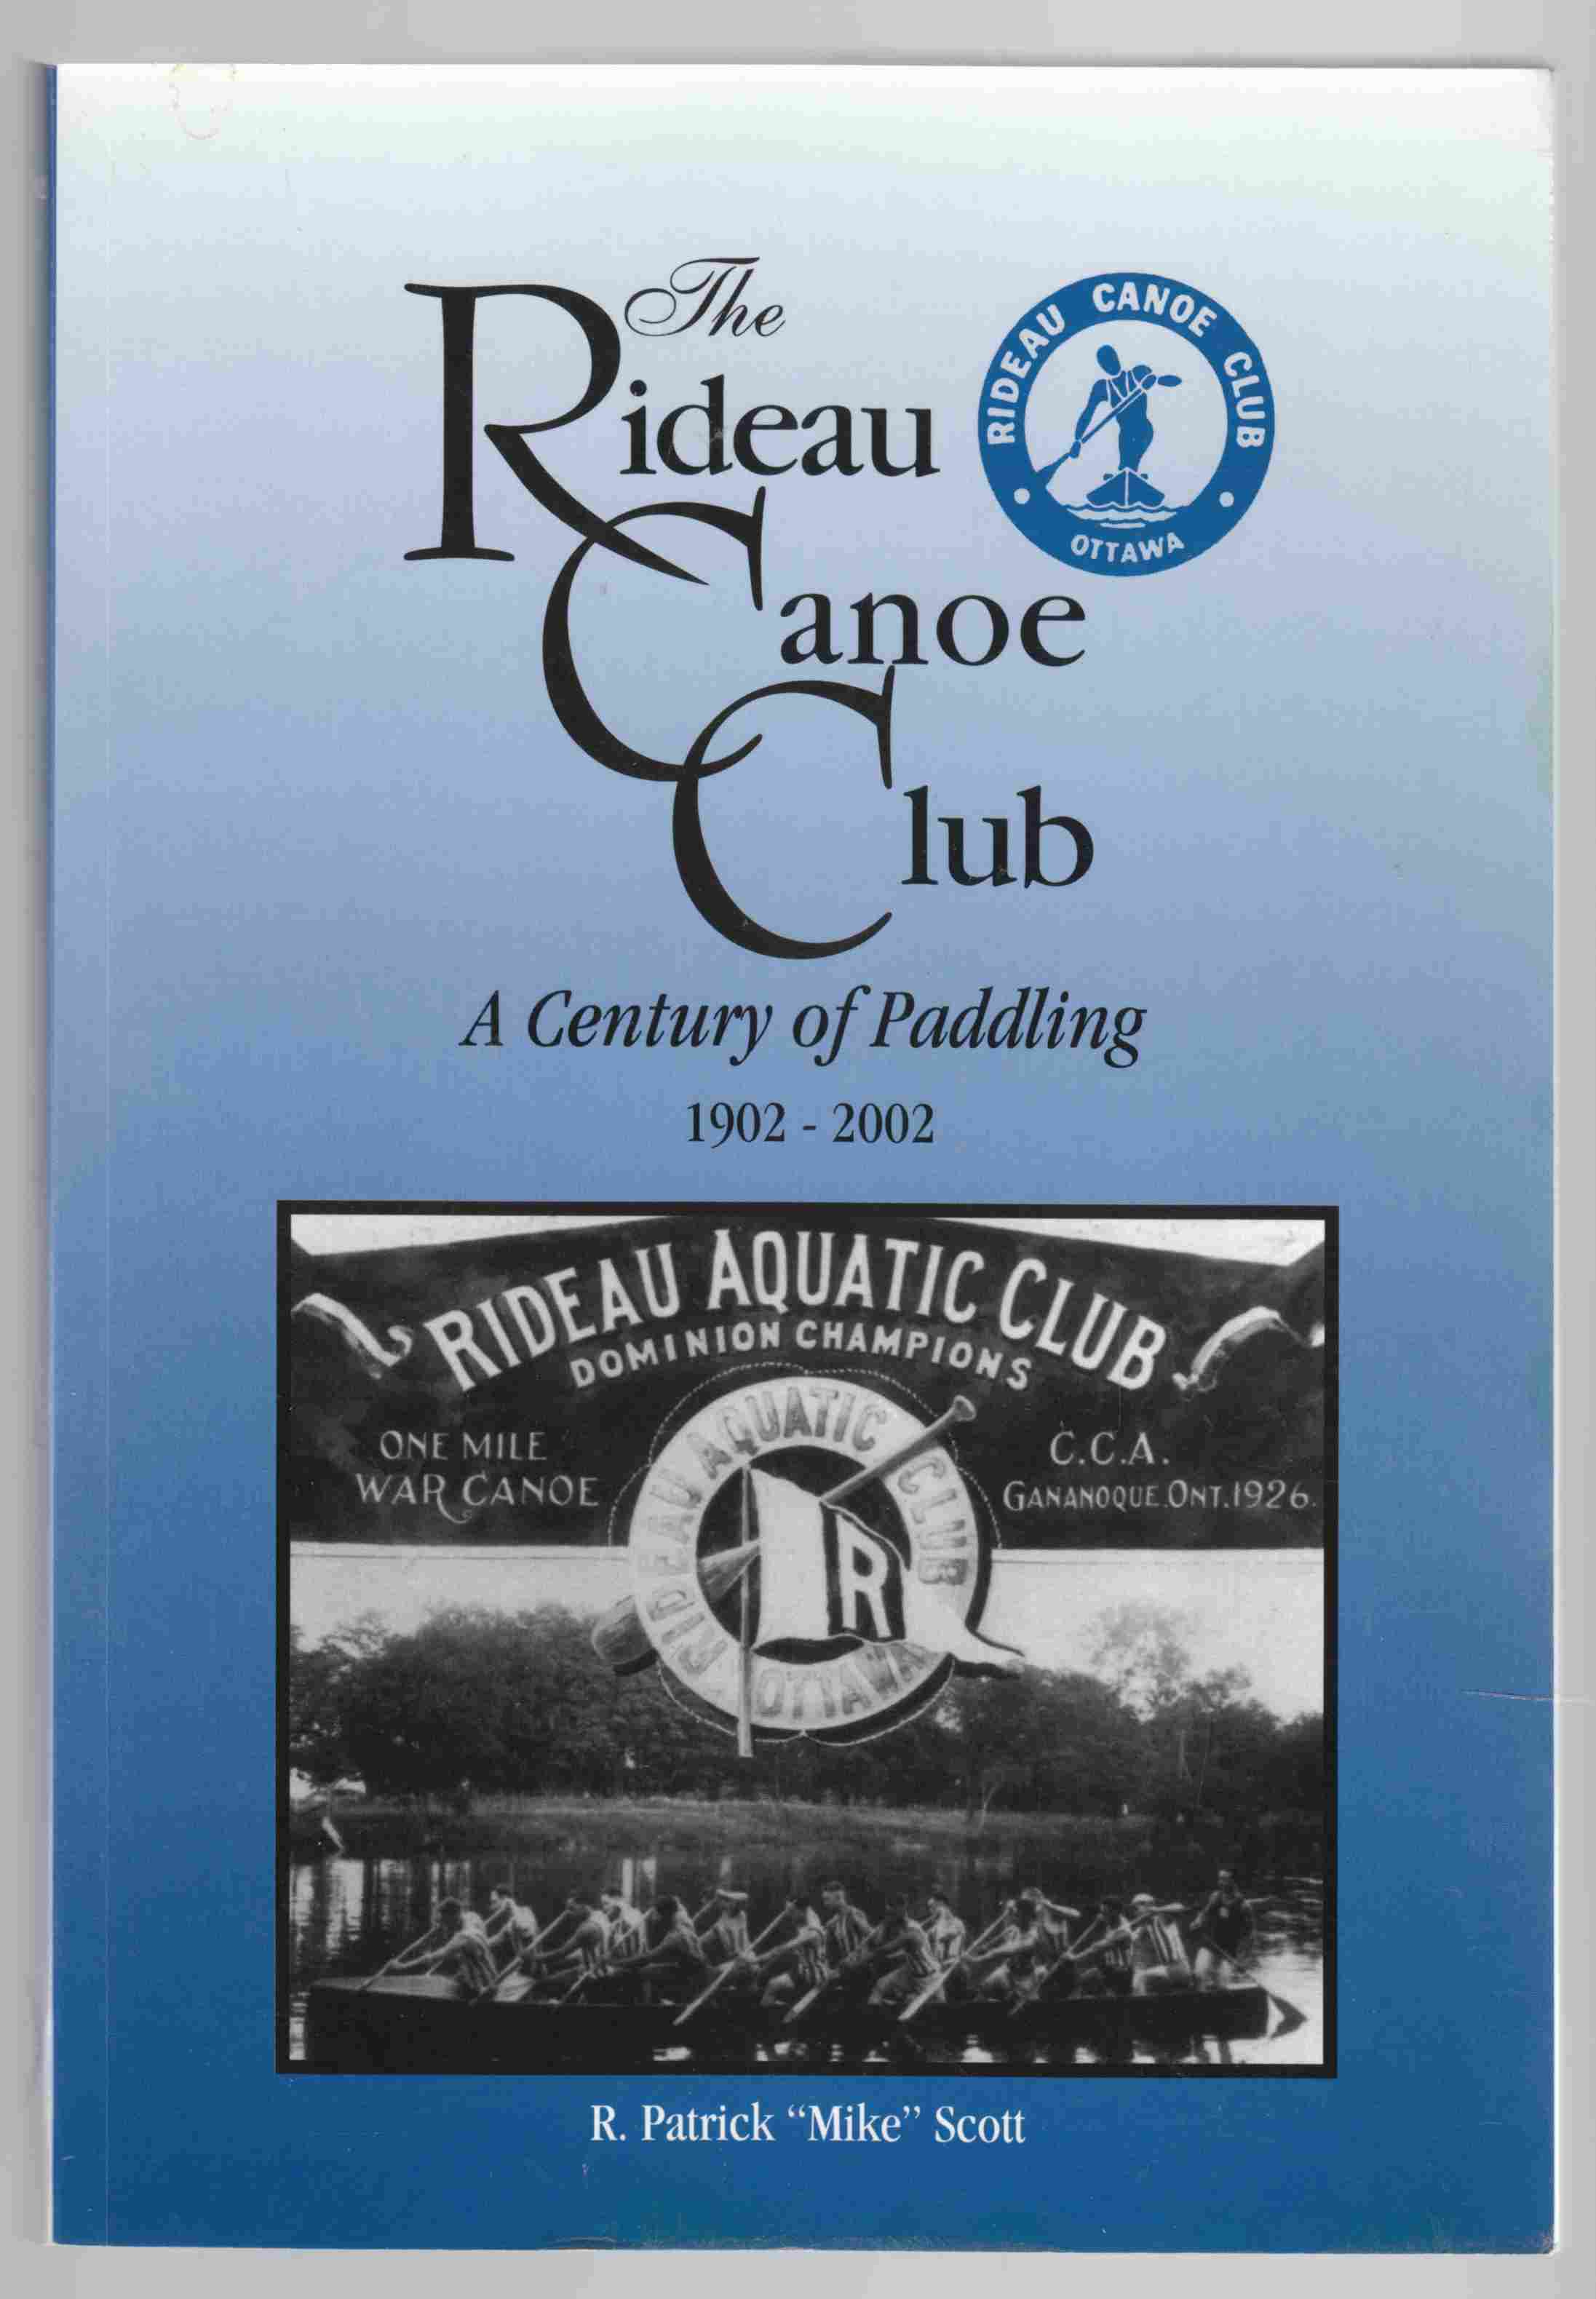 Image for The Rideau Canoe Club A Century of Paddling 1902 - 2002